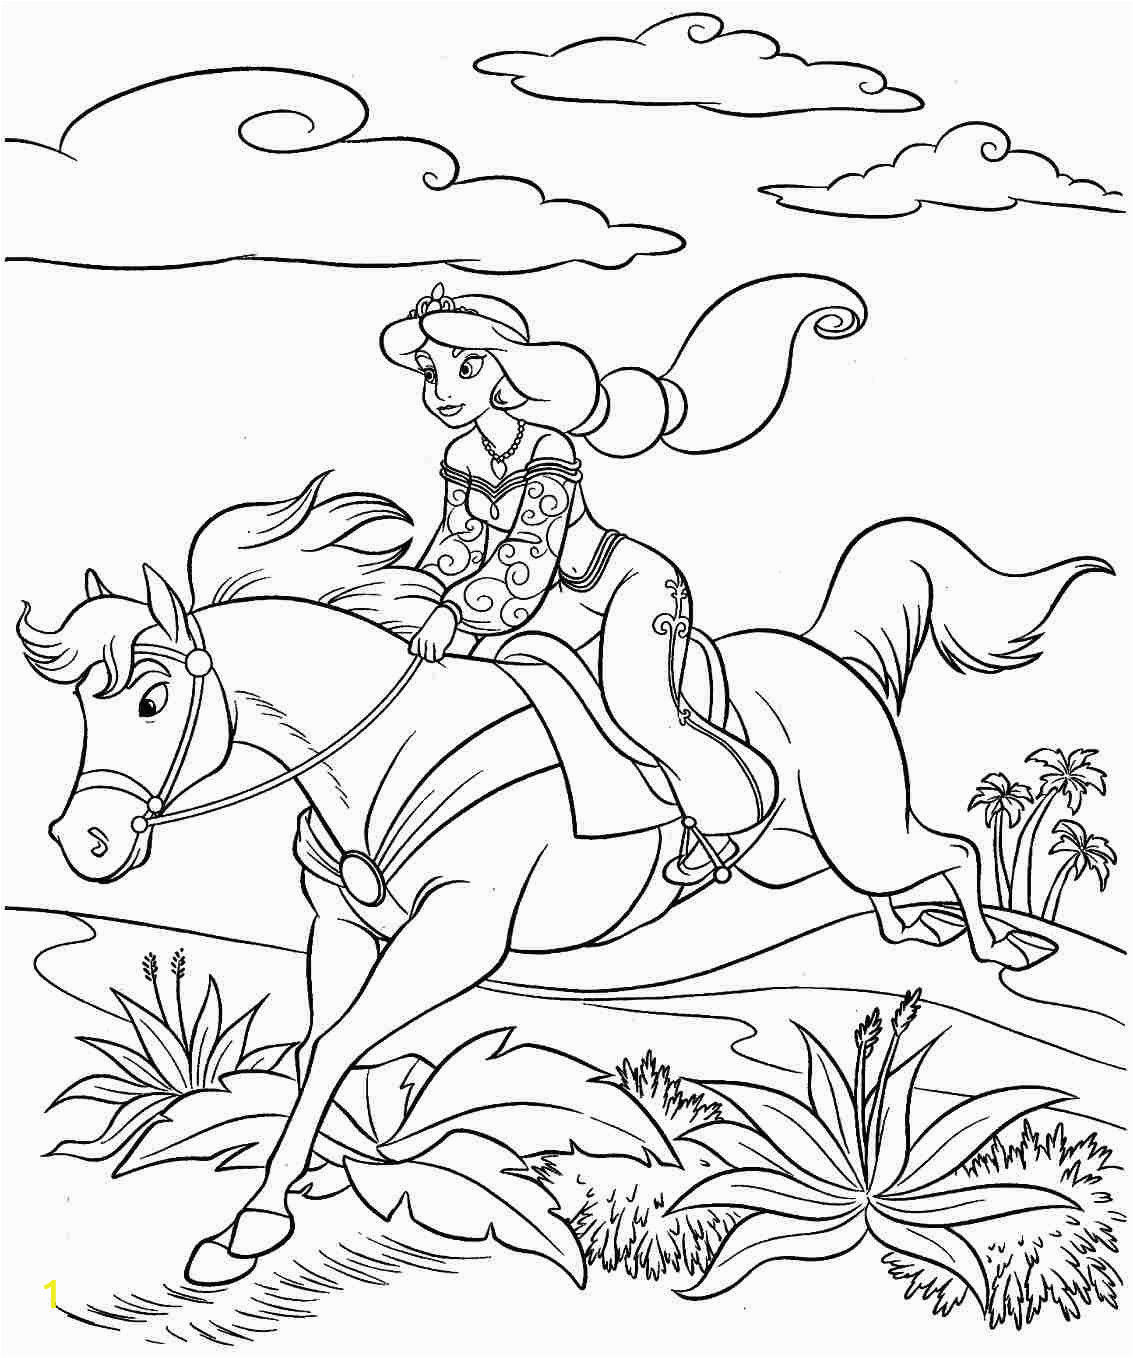 princess on horse coloring pages horse and princess coloring play free coloring game online pages on princess coloring horse